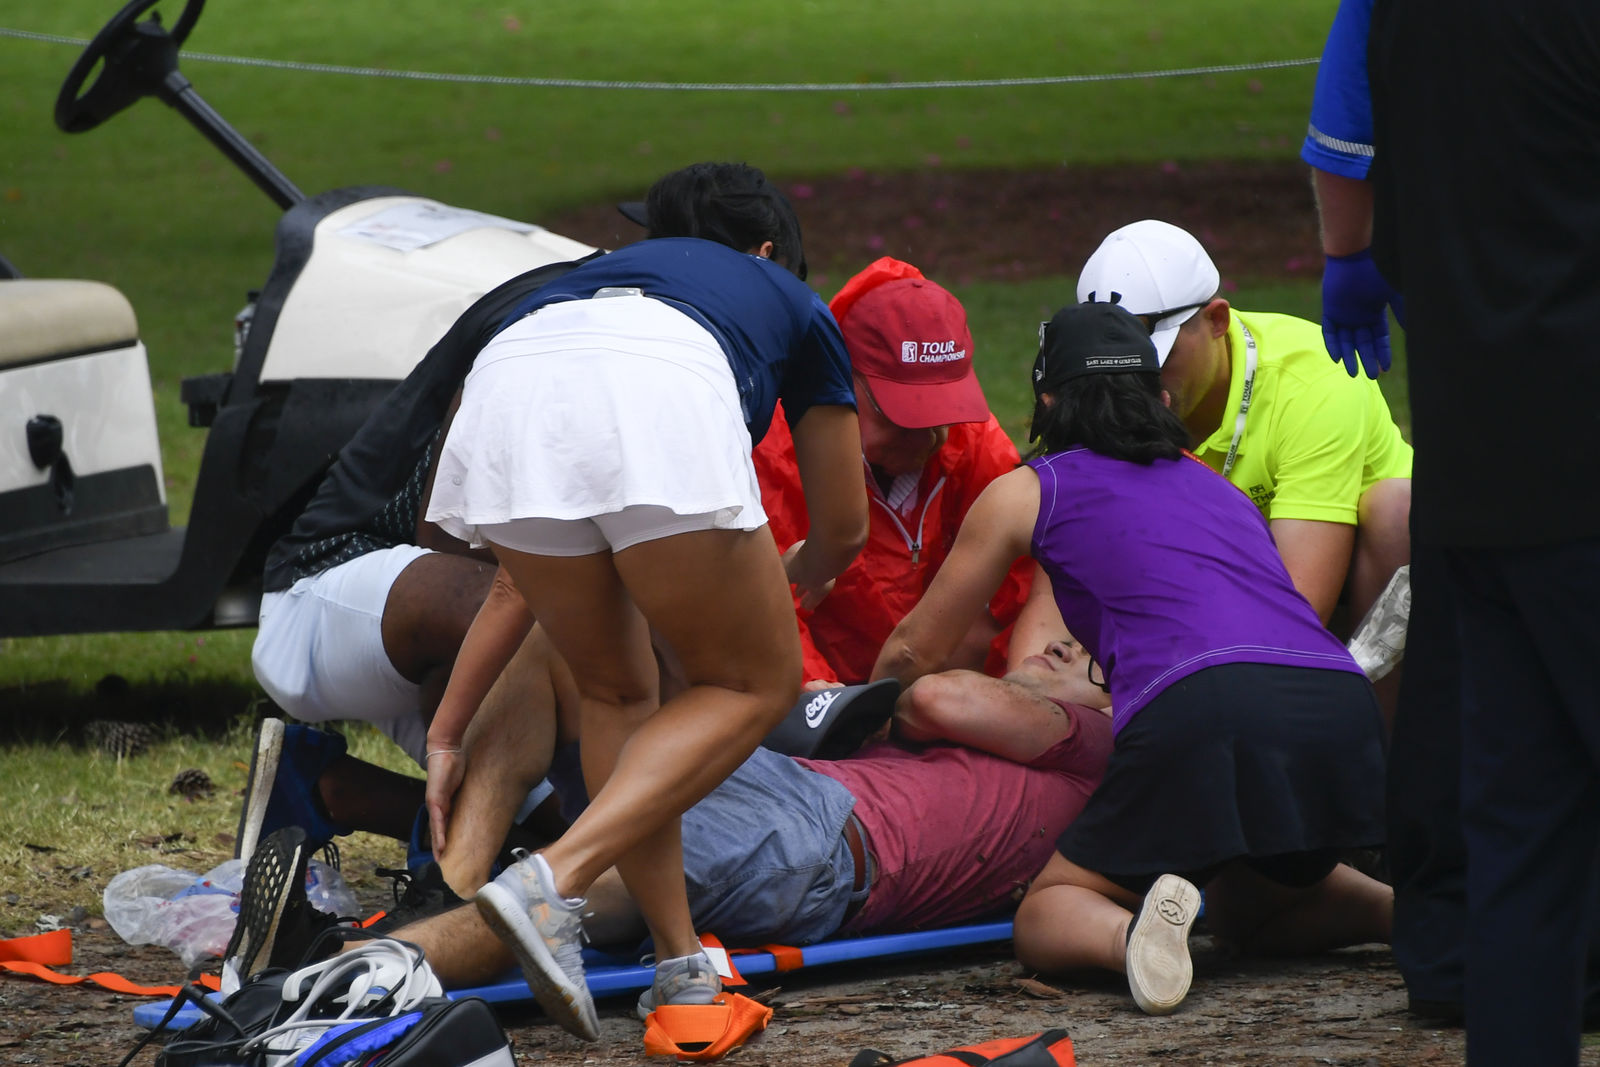 A spectators is tended to after a lightning strike on the course which left several injured during a weather delay in the third round of the Tour Championship golf tournament Saturday, Aug. 24, 2019, in Atlanta. (AP Photo/John Amis)